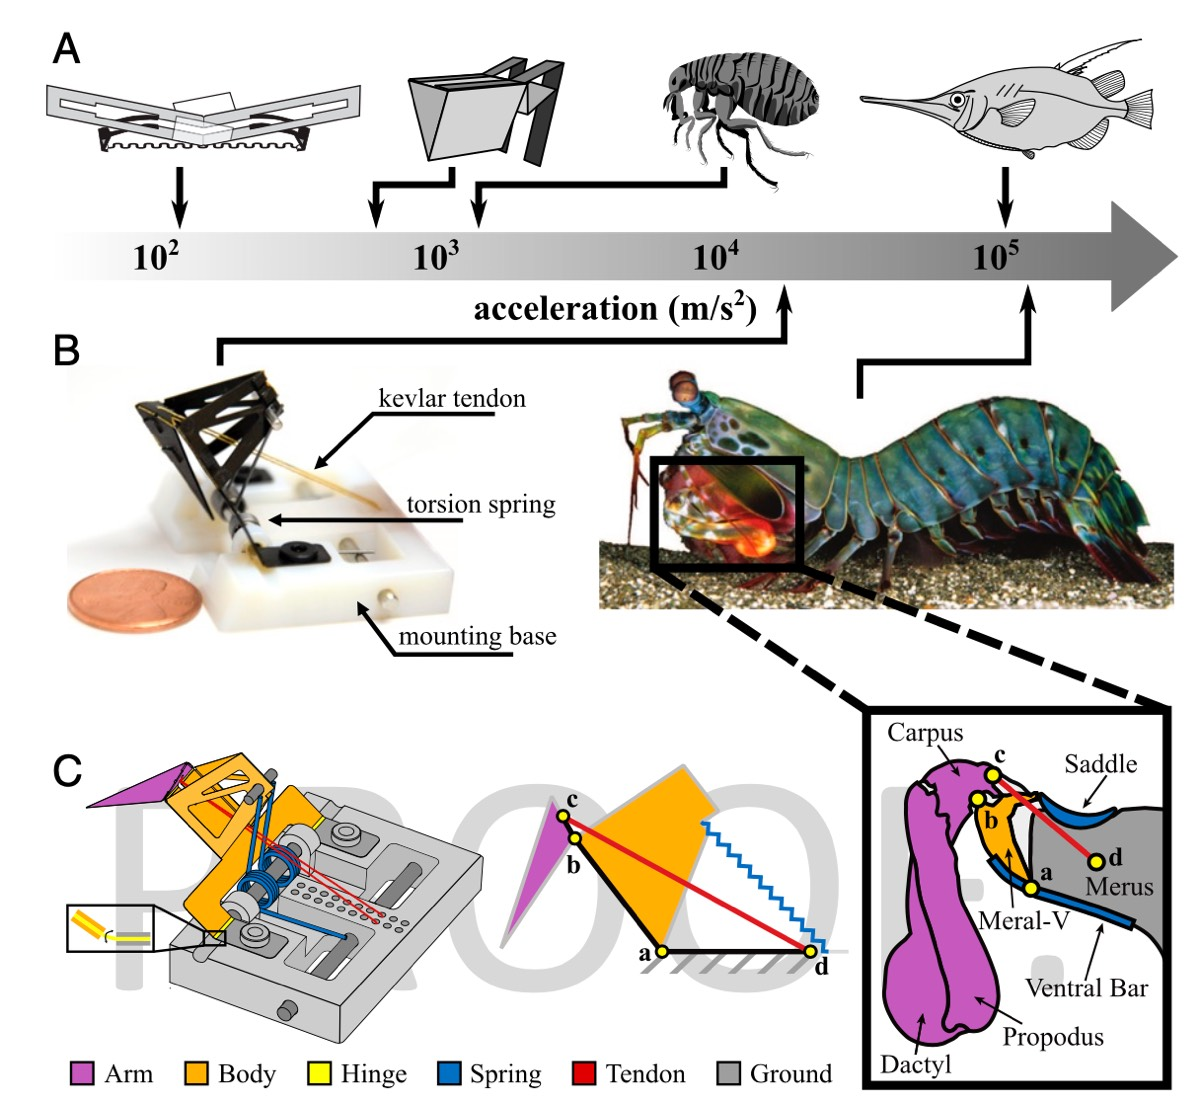 Schematic overview of biologically inspired physical models that generate extreme accelerations.